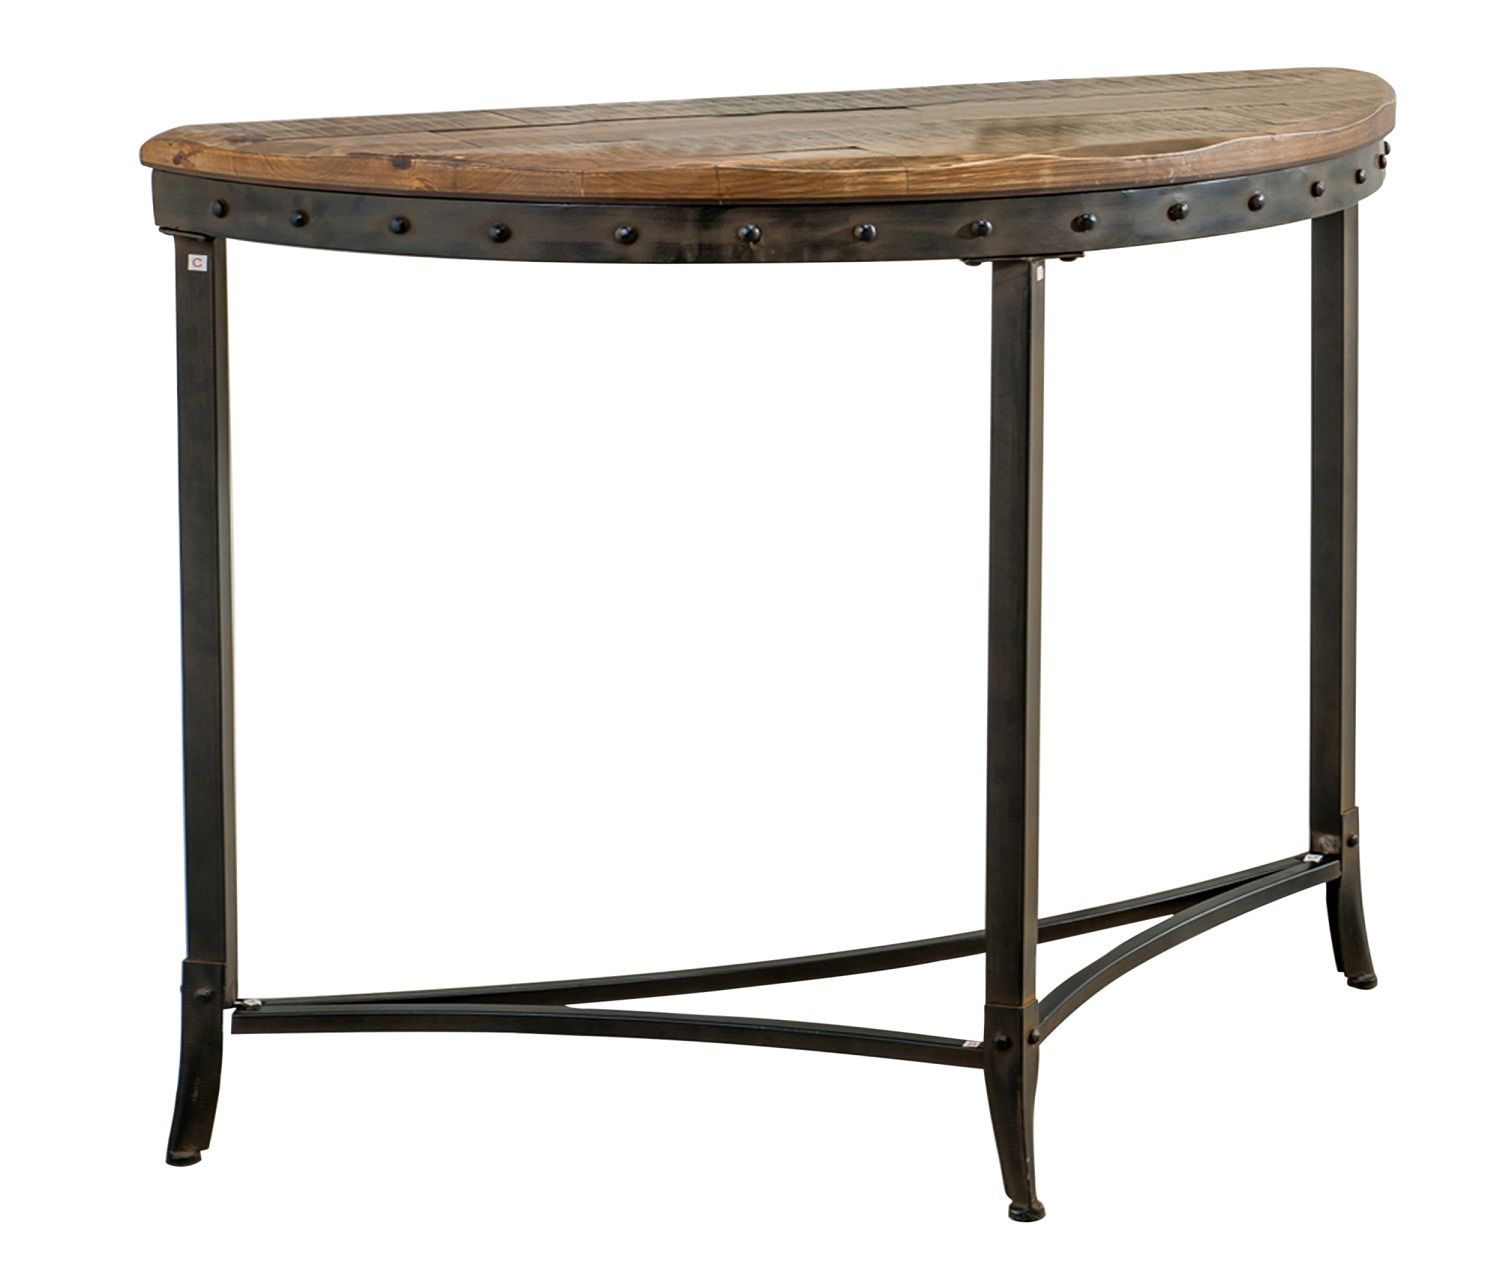 TRENTON-CONSOLE TABLE-DISTRESSED PINE, 841173017545, Console Table by Midha Furniture to Brampton, Mississauga, Etobicoke, Toronto, Scraborough, Caledon, Oakville, Markham, Ajax, Pickering, Oshawa, Richmondhill, Kitchener, Hamilton and GTA area